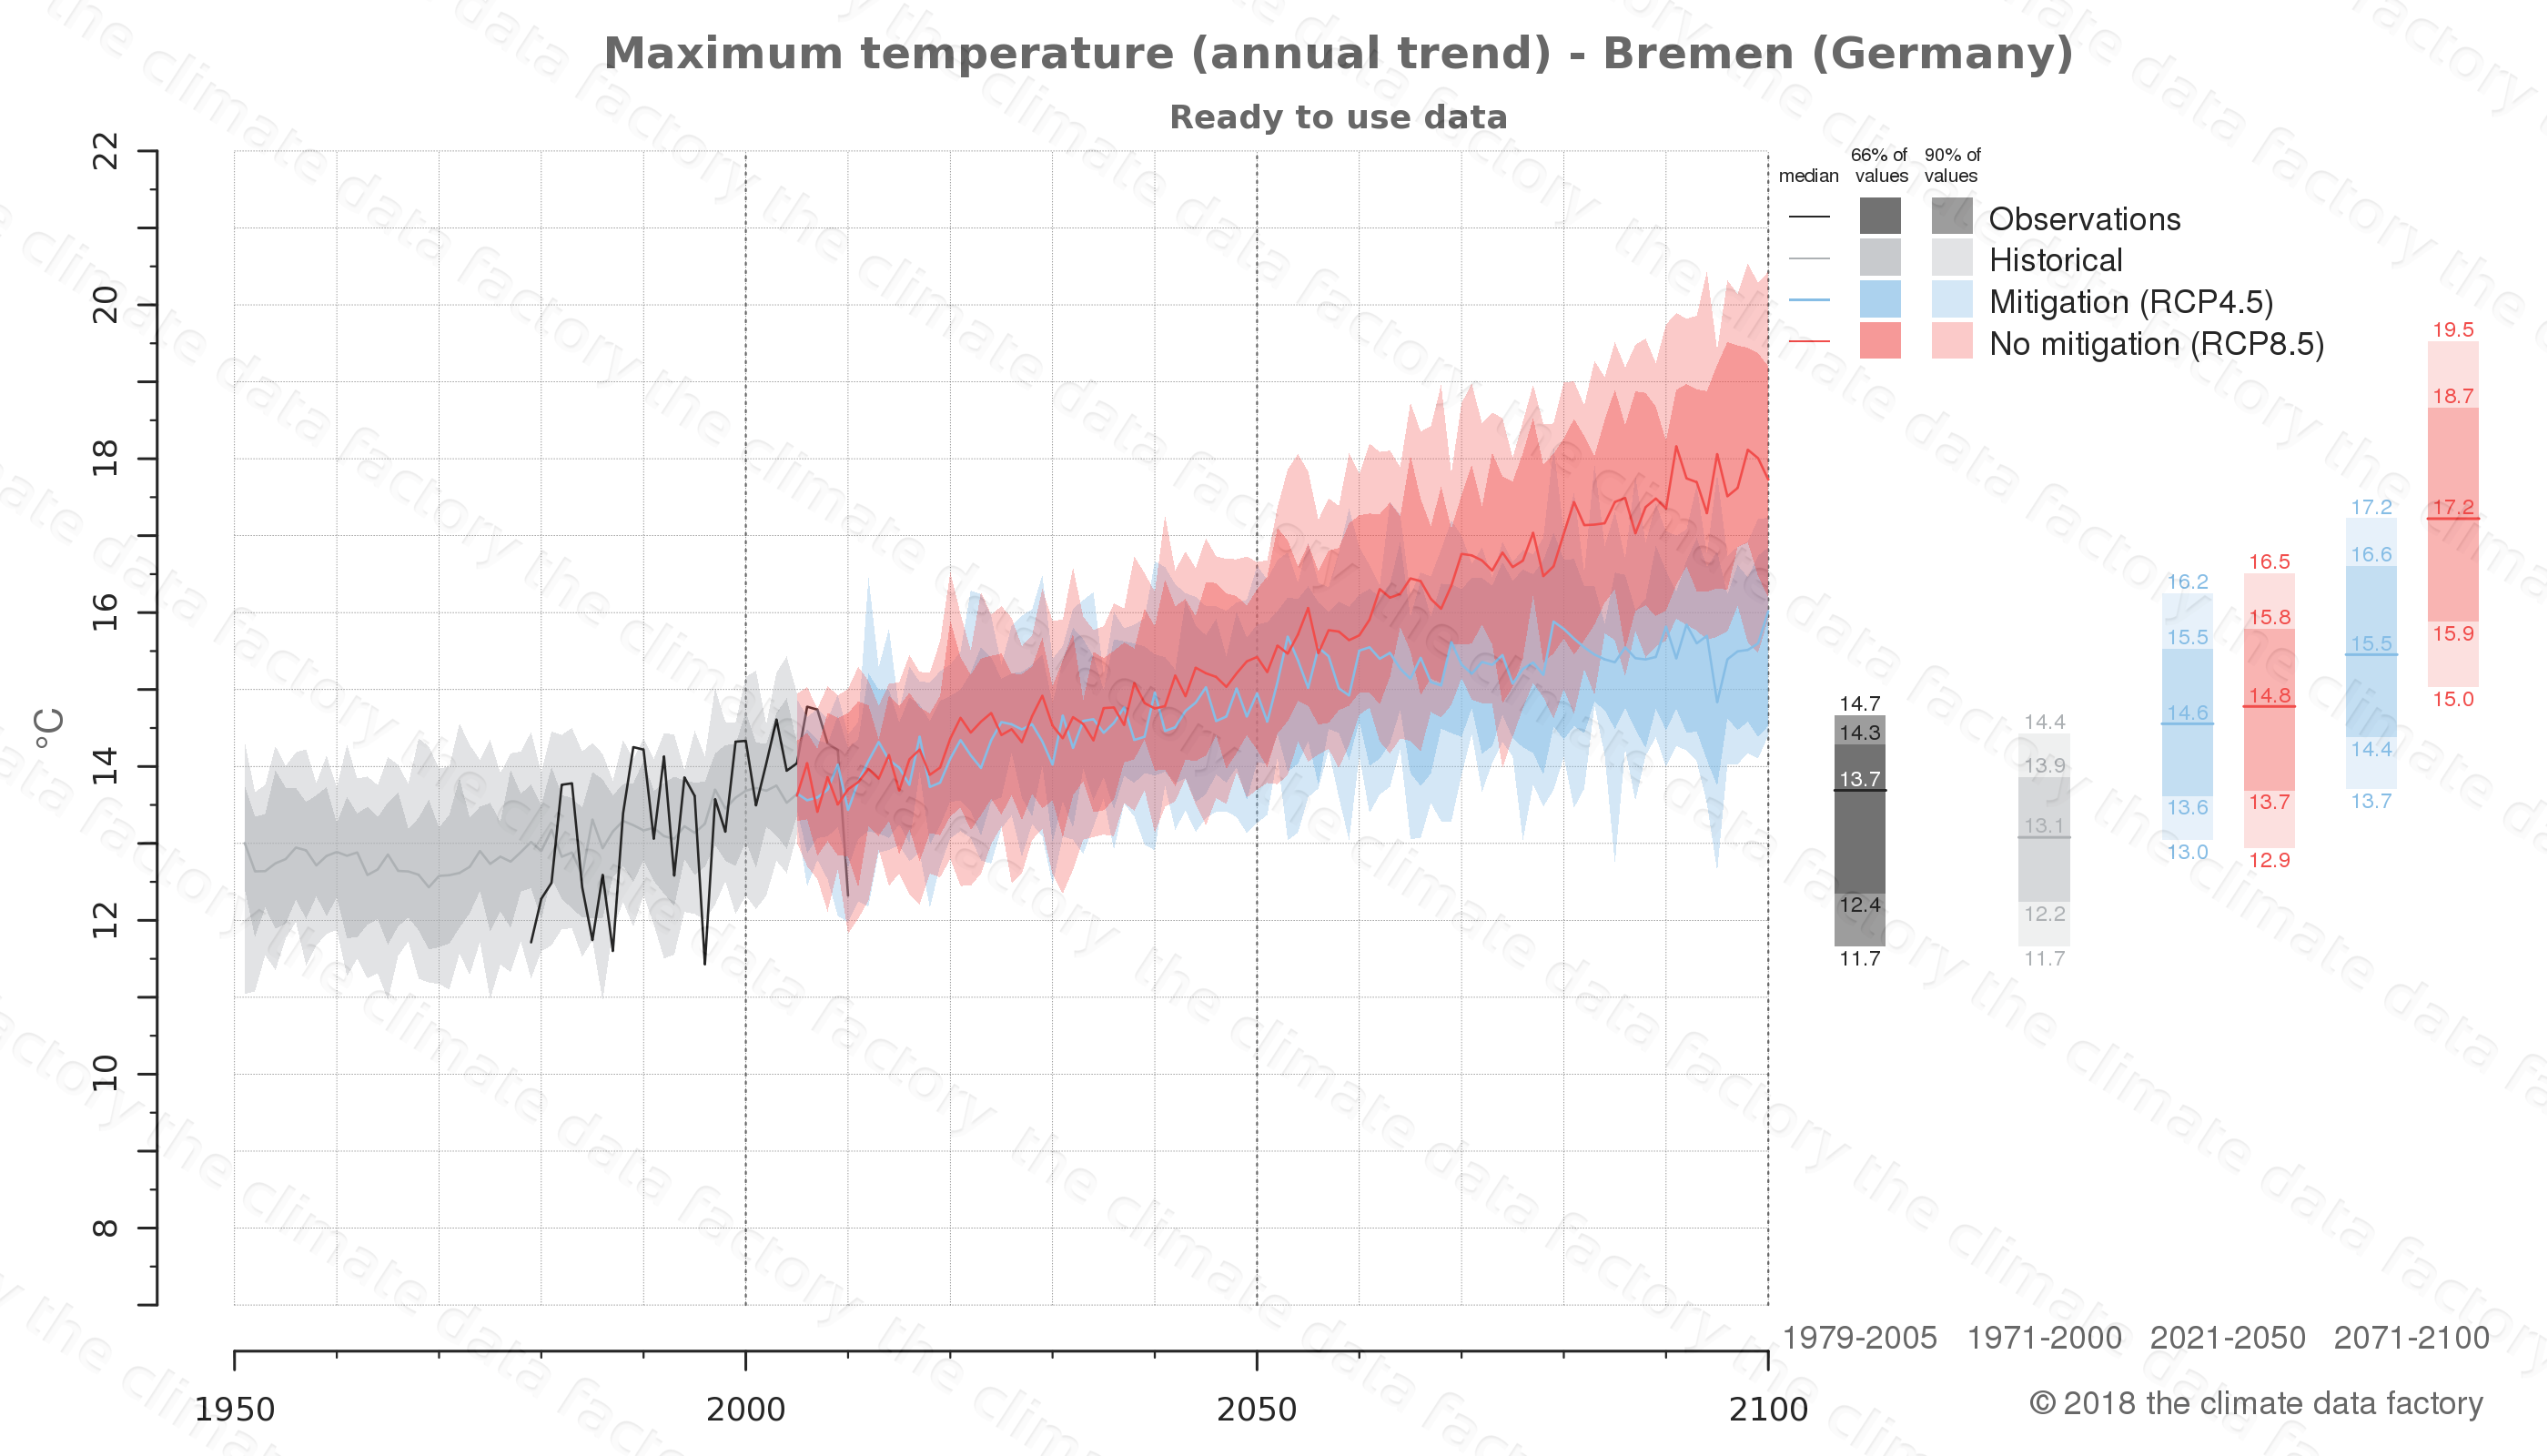 climate change data policy adaptation climate graph city data maximum-temperature bremen germany